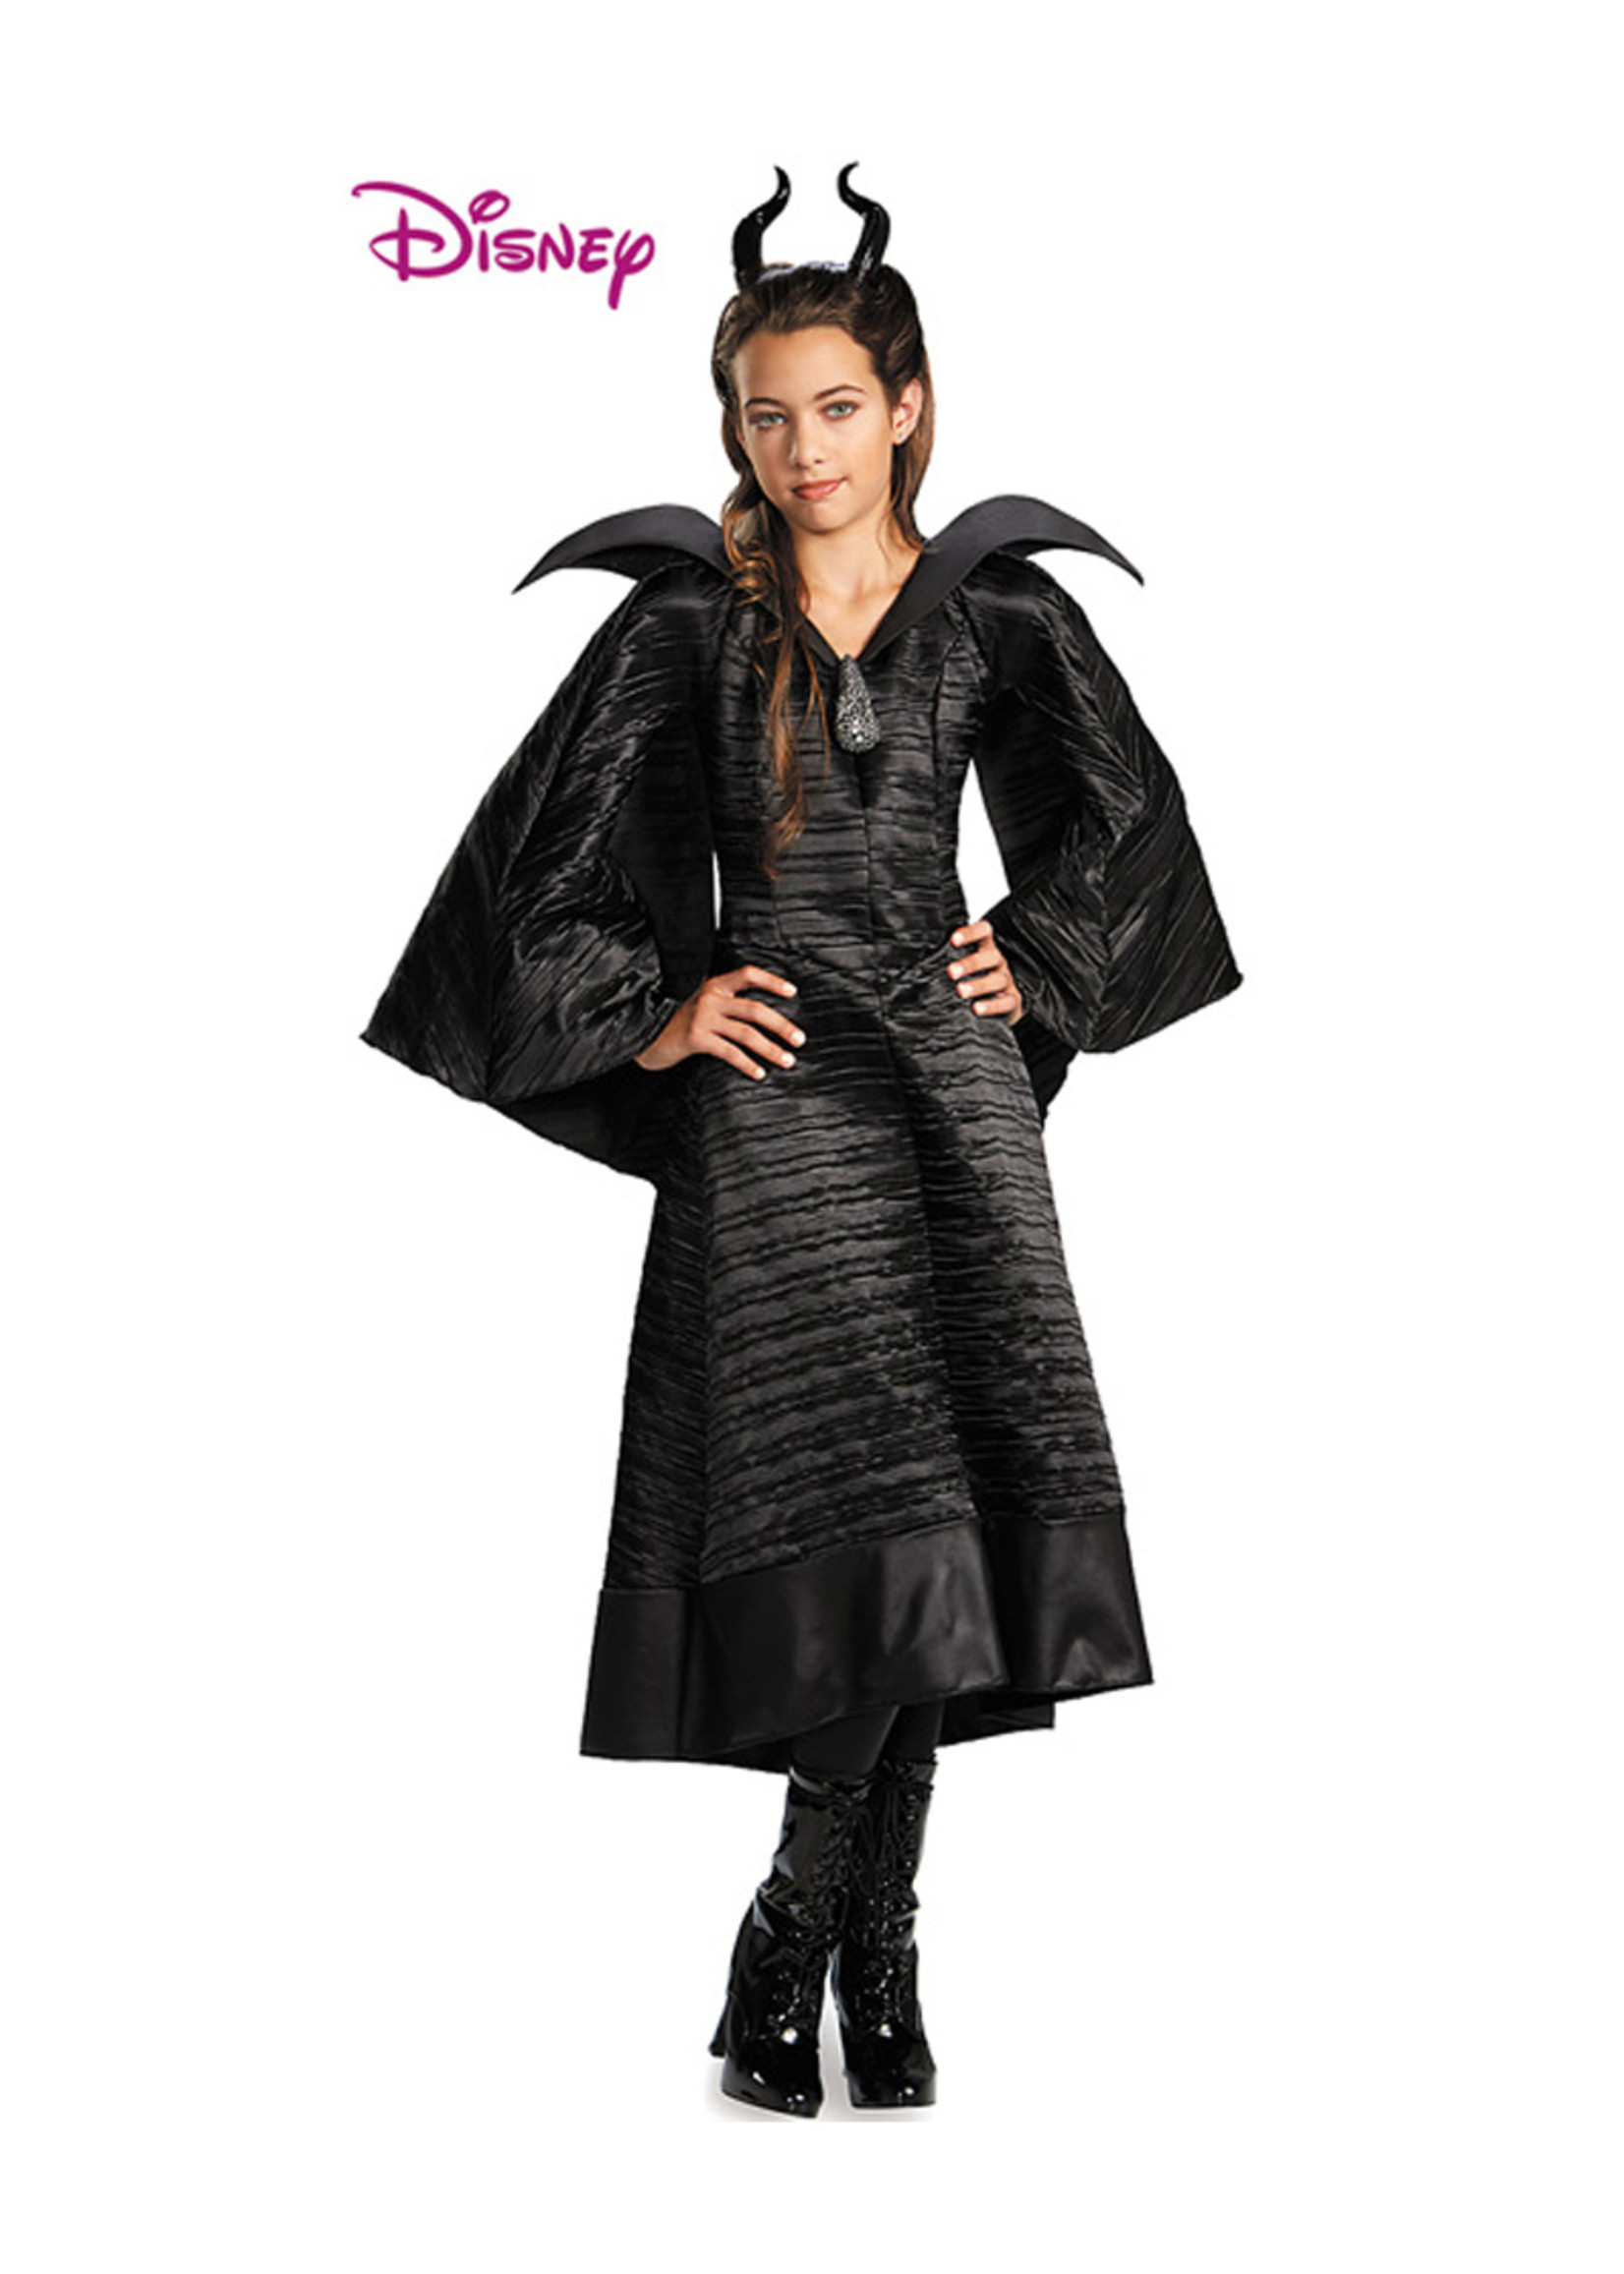 DISGUISE Maleficent Christening Gown Deluxe Costume - Girls